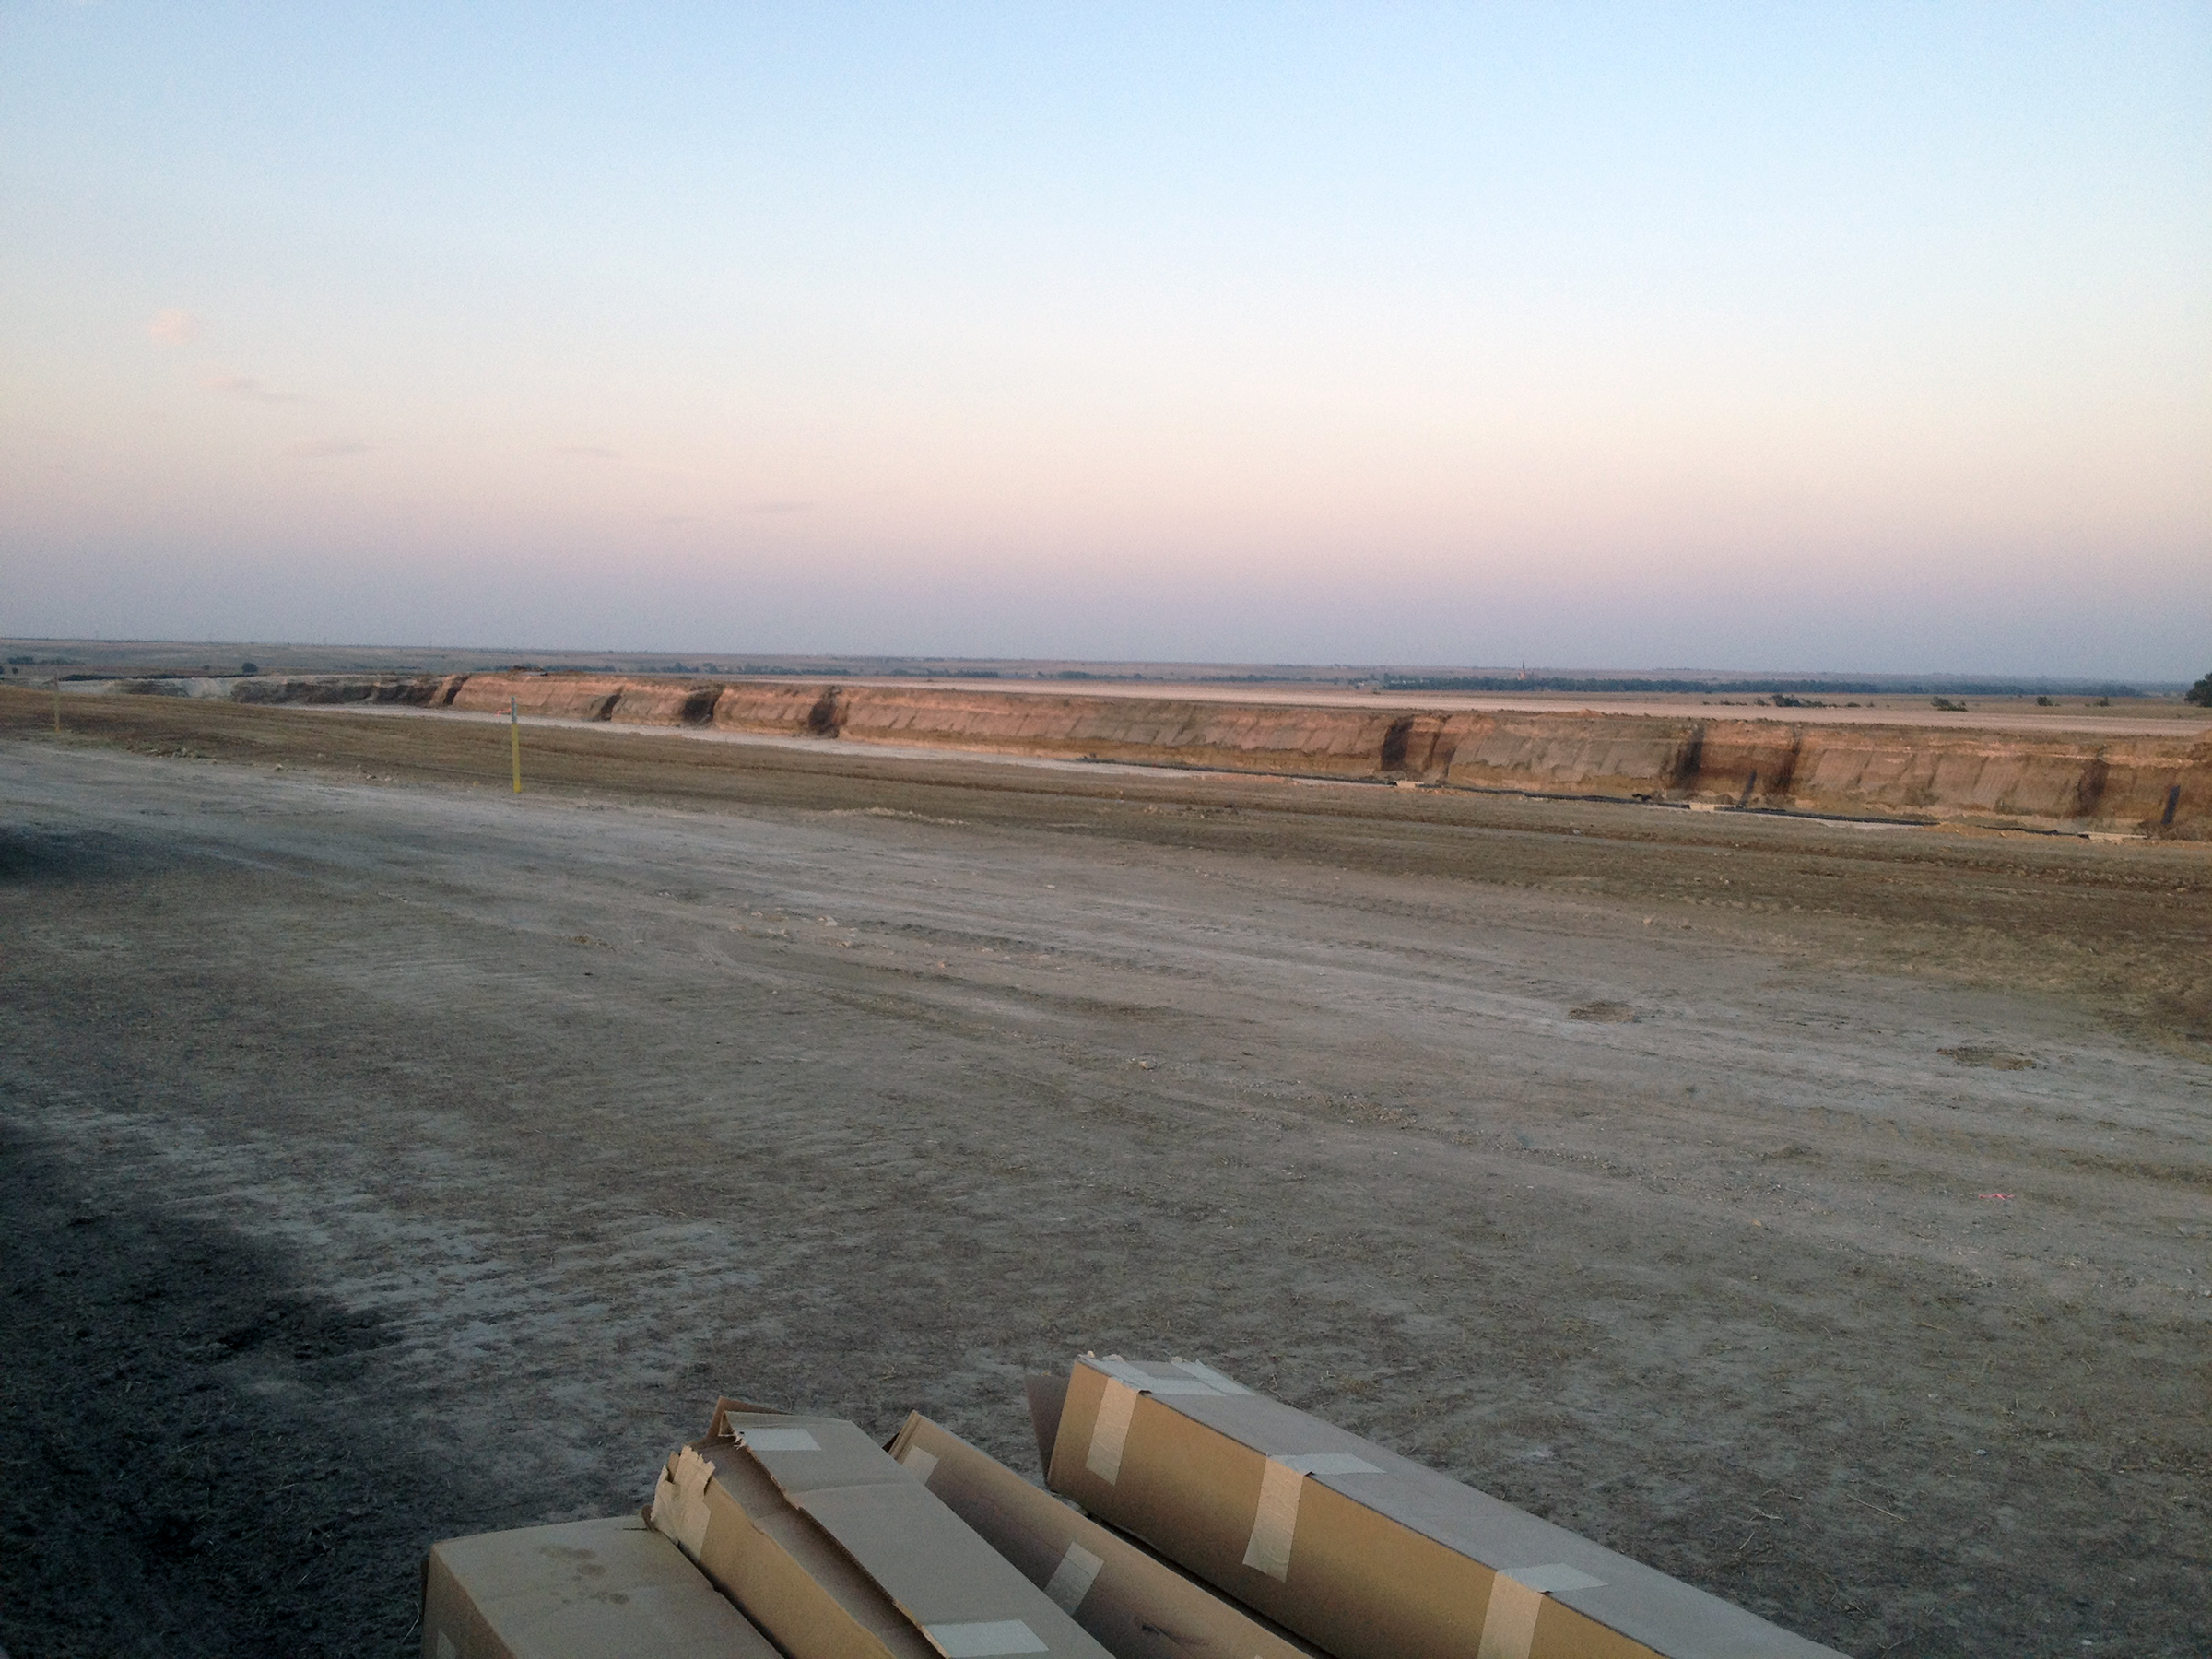 The first of three large hog waste pits under construction near the town of Pfeifer, southeast of Hays. (Photo by Bryan Thompson / Kansas News Service)